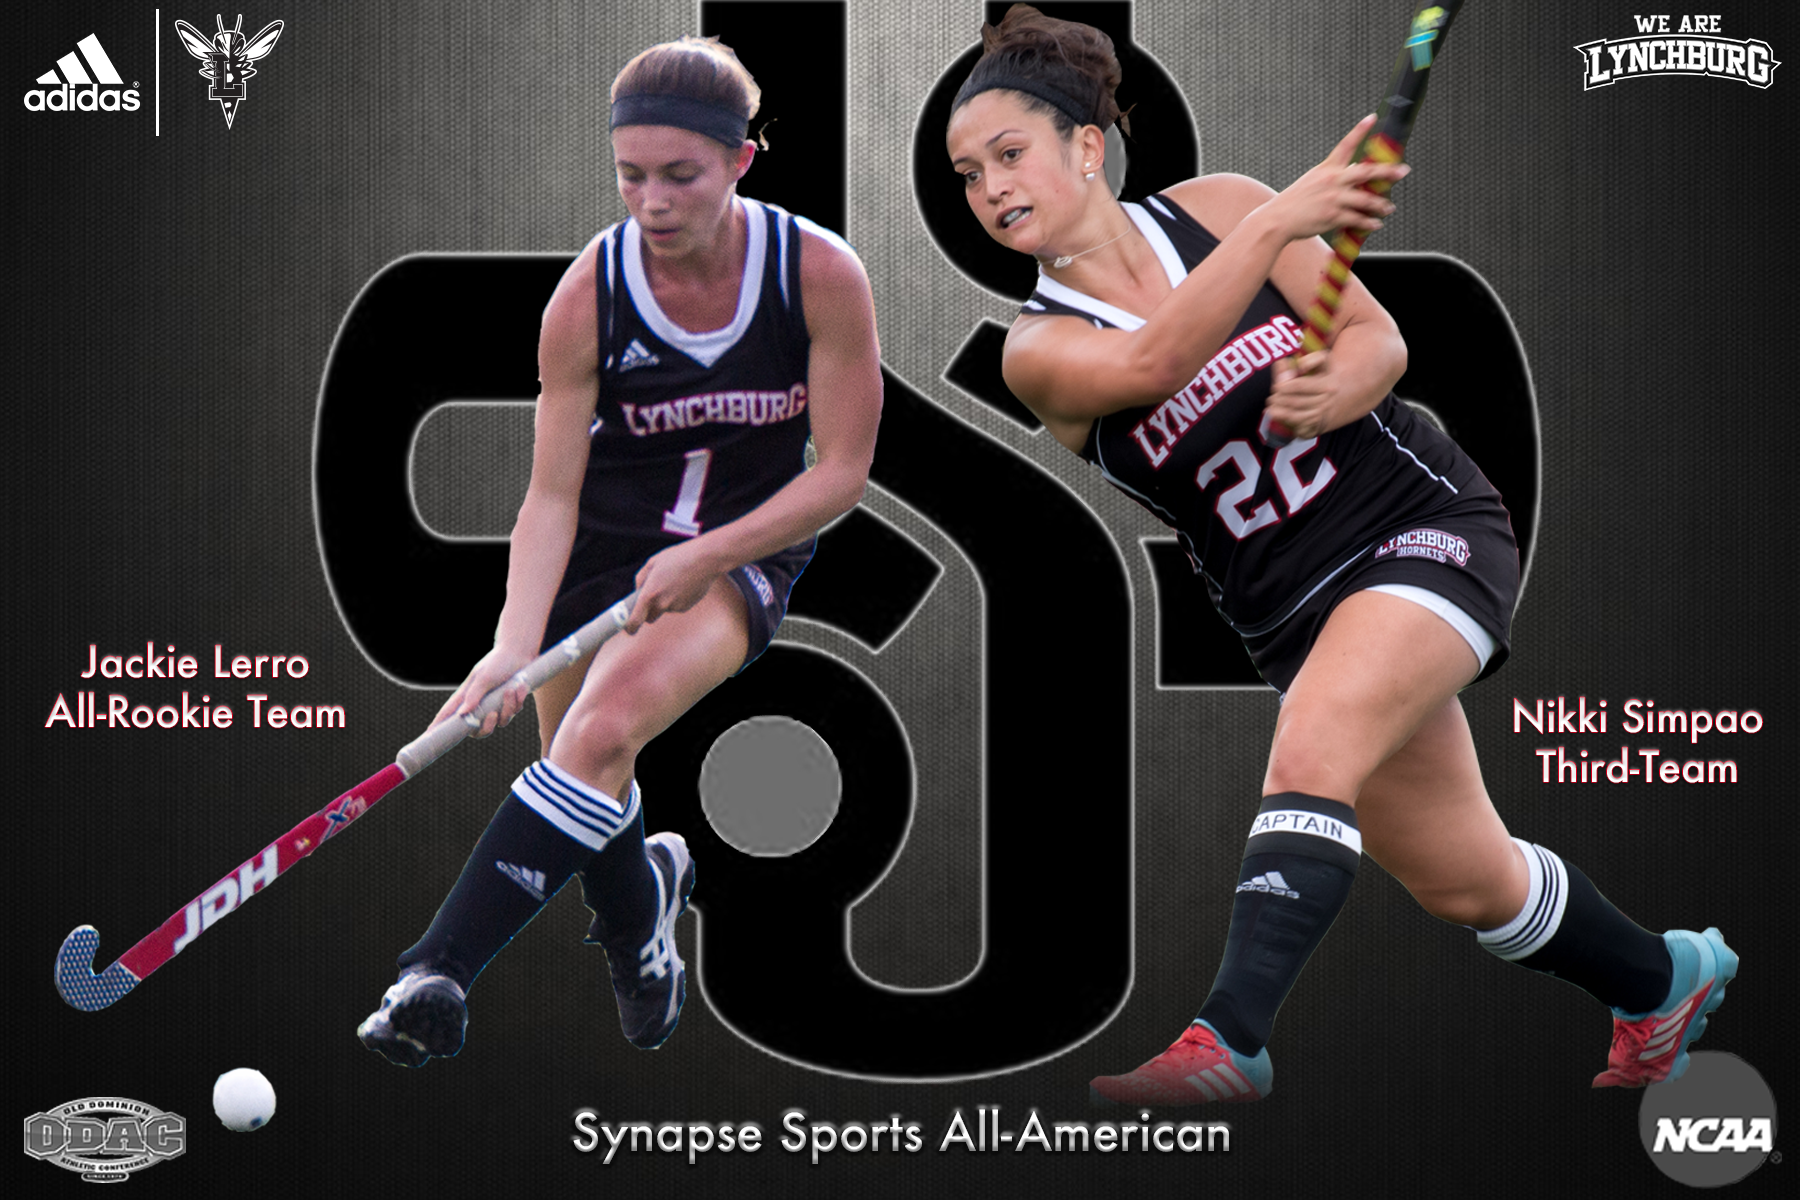 Graphic showing Jackie Lerro and Nikki Simpao atop the Synapse Sports logo. Text: Synapse Sports All-Americans